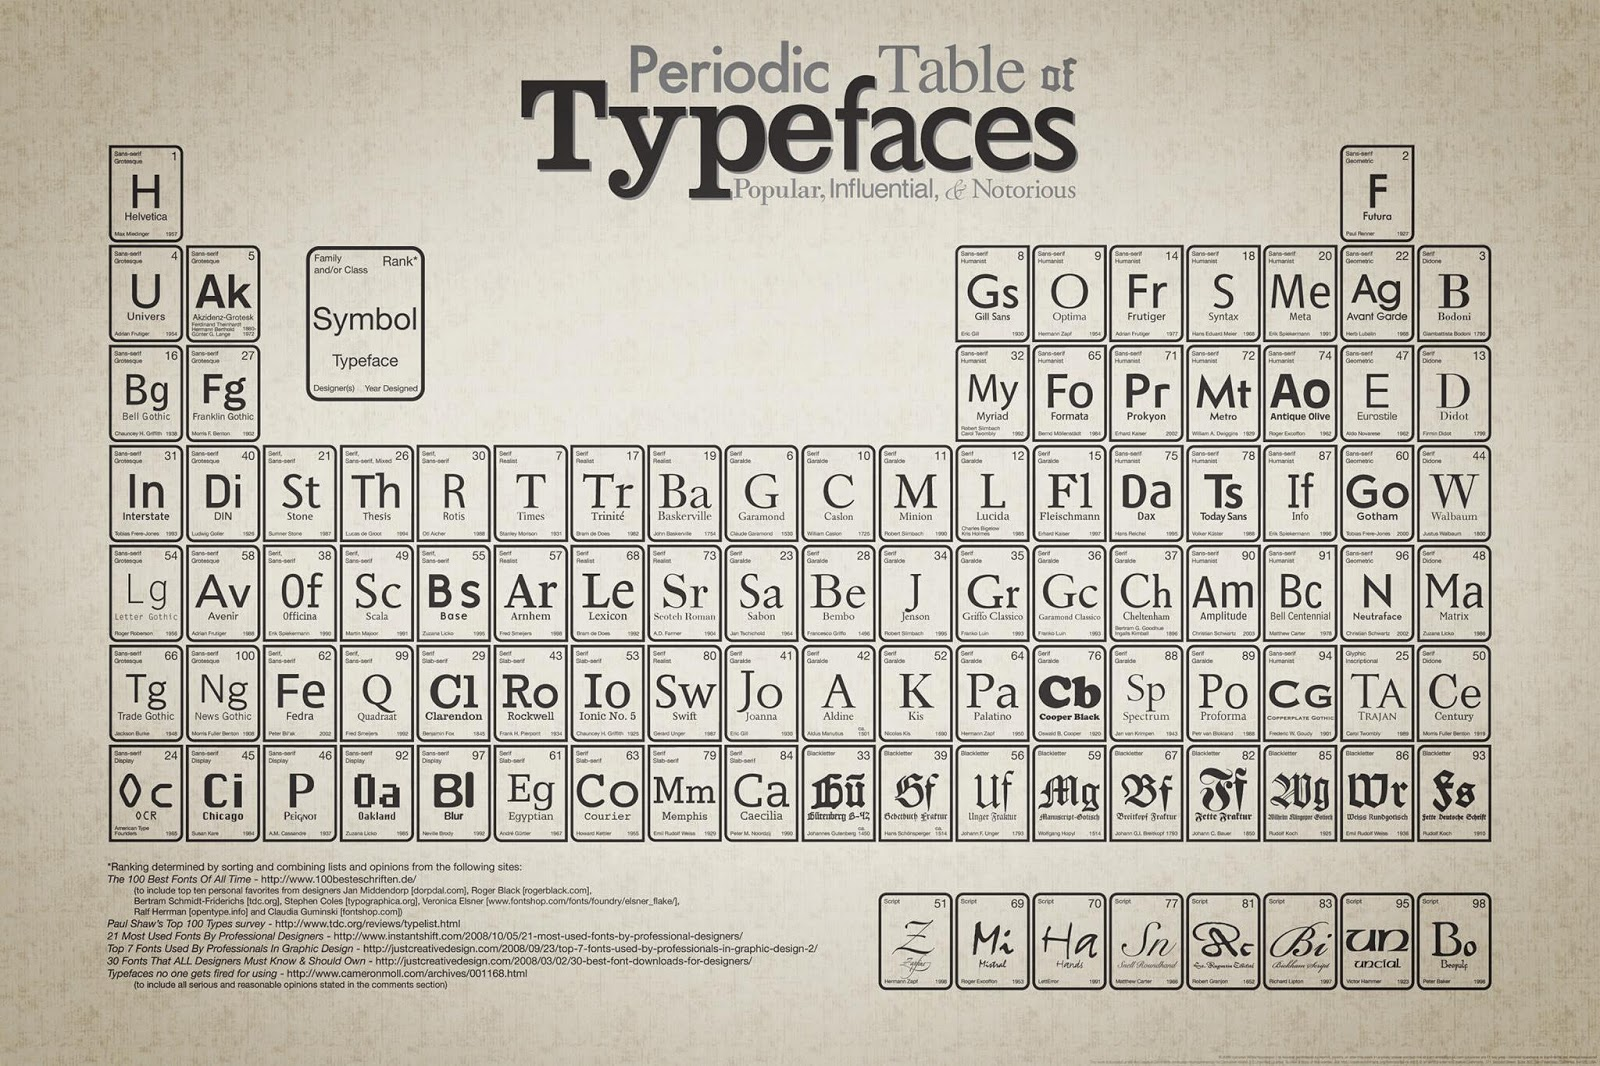 Most Influential Typeface of All Time